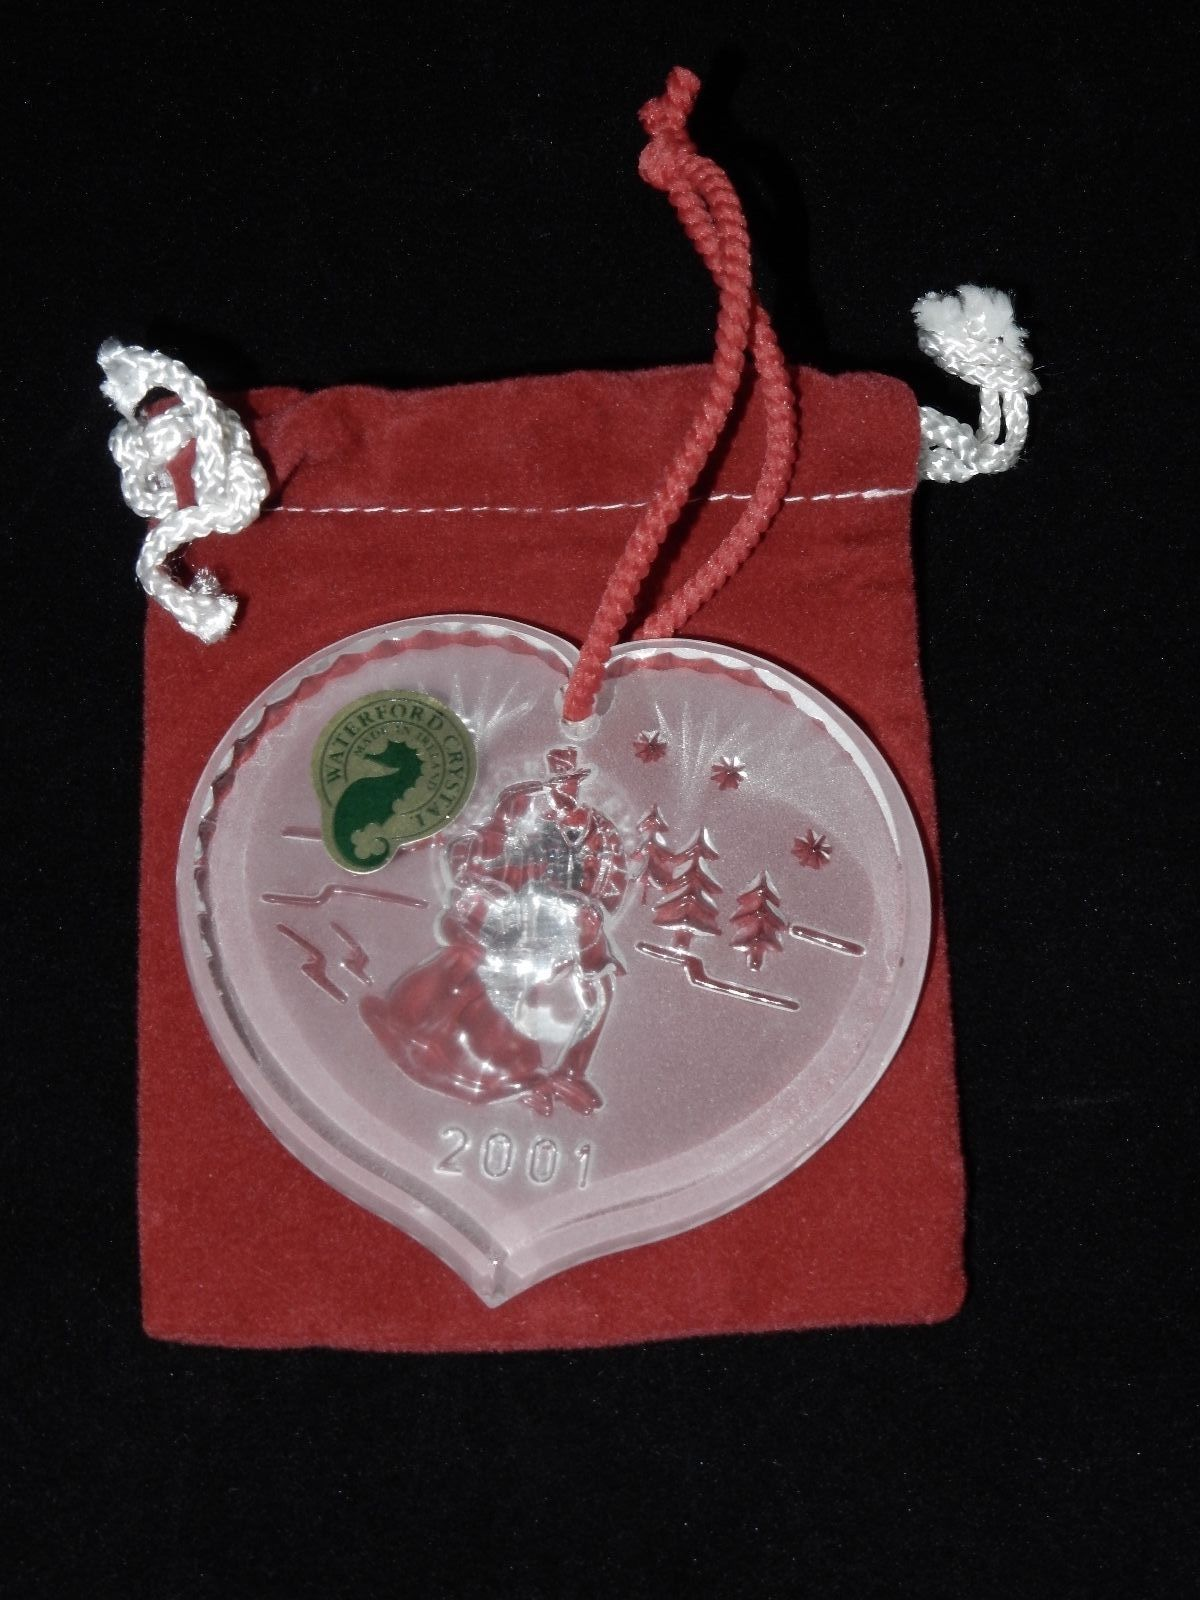 Waterford Crystal Joys Of Winter Ice Skaters Christmas Ornament 2001 4th Edition image 2